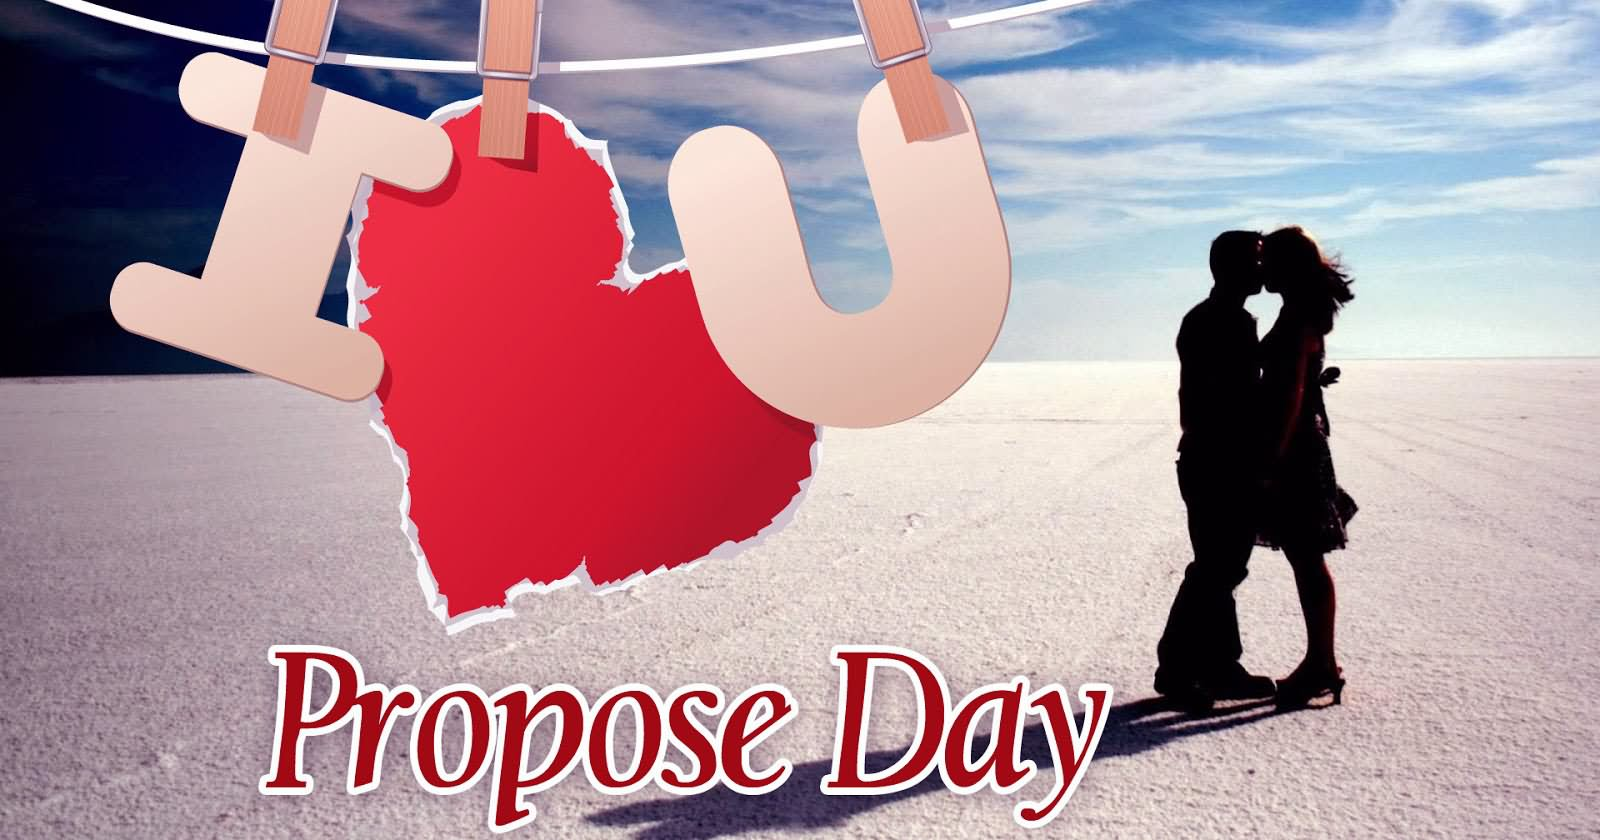 4-Propose Day Wishes